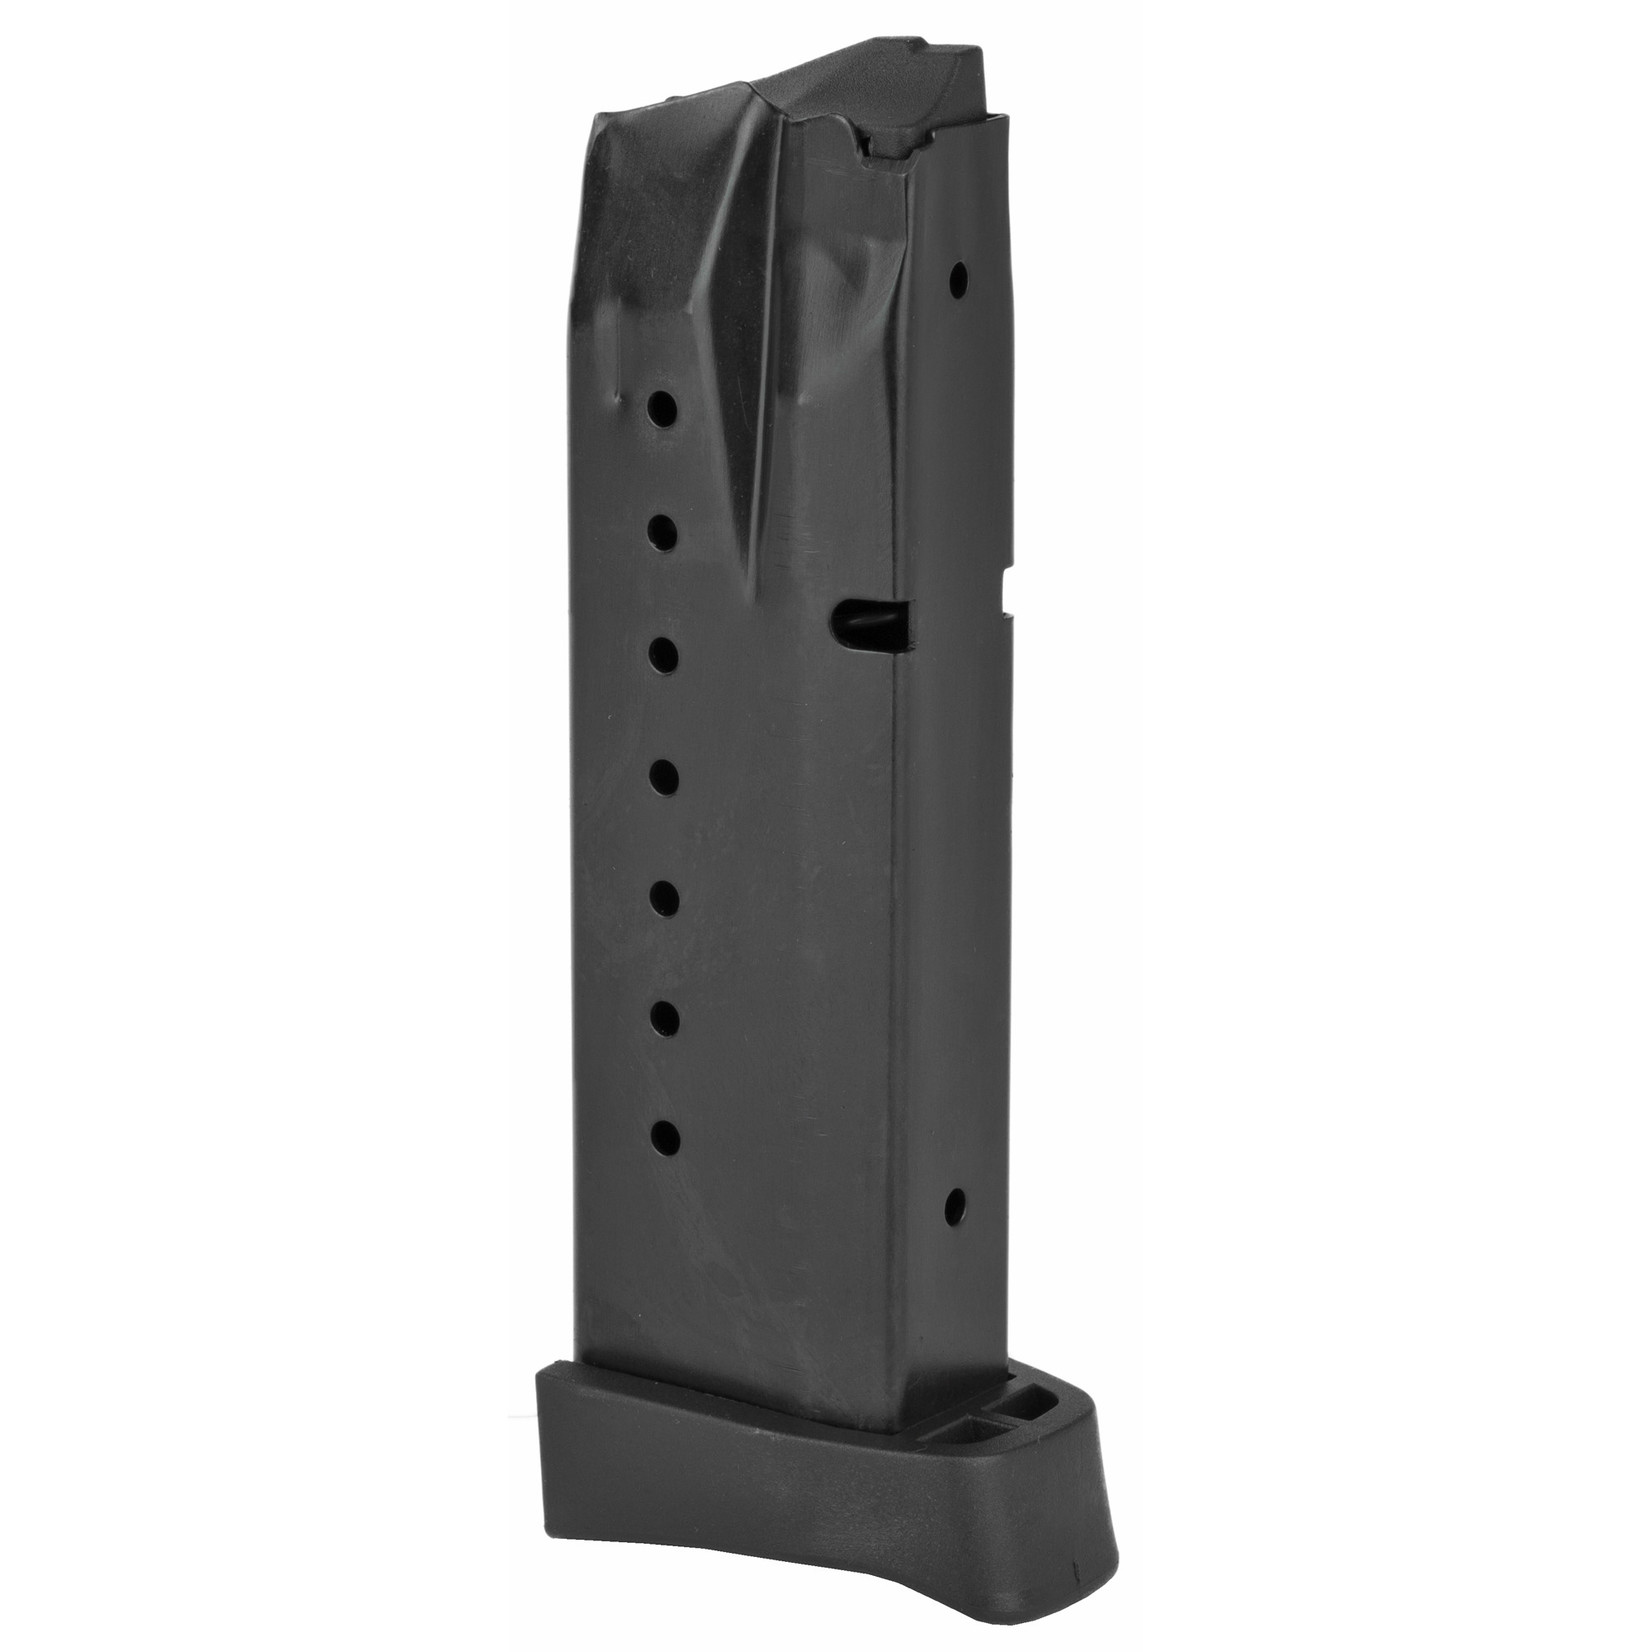 Pro Mag Pro Mag S&W SD9 17RD